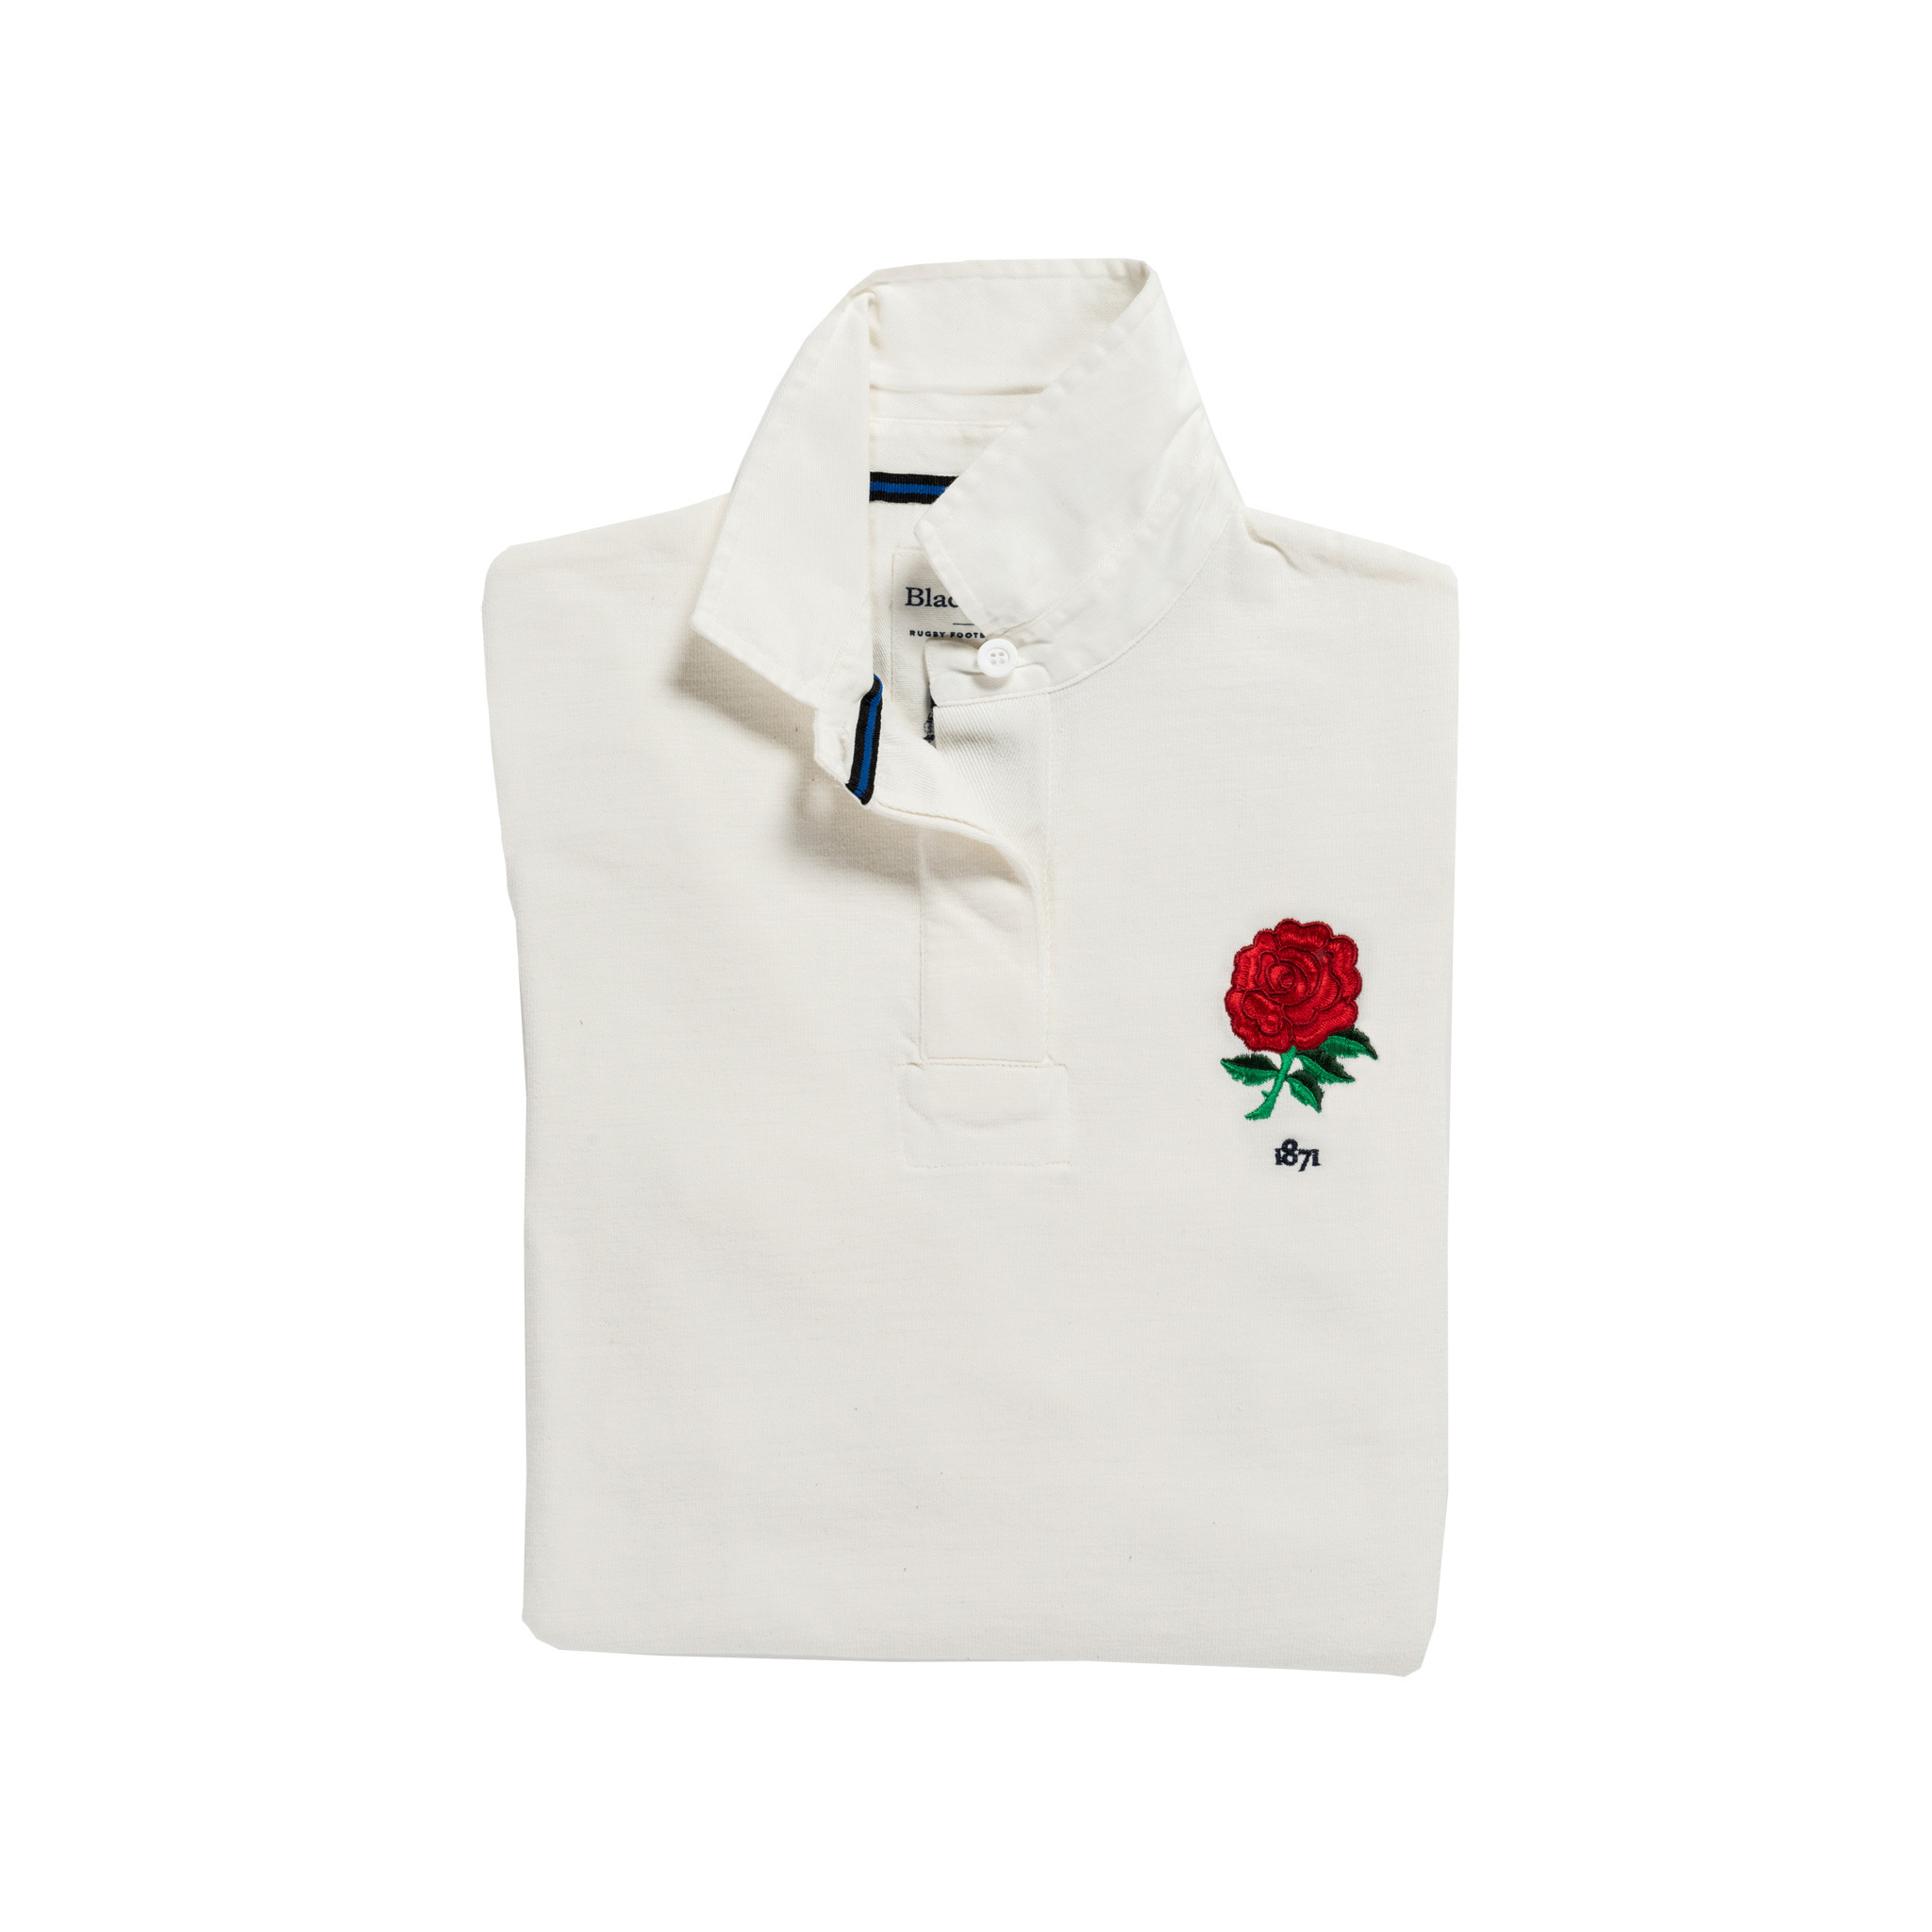 Women's England 1871 Vintage Rugby Shirt